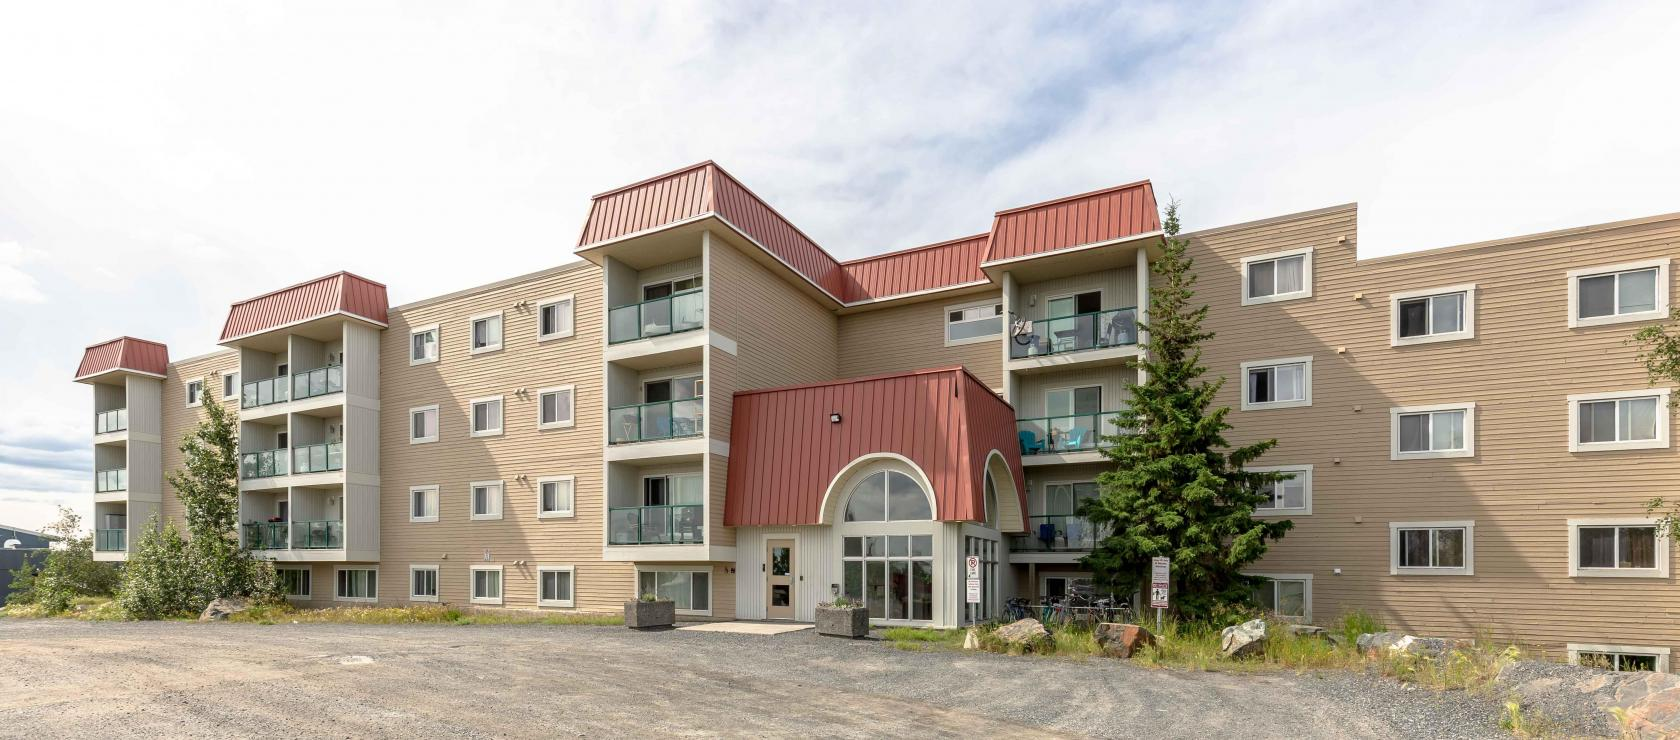 107 - 5600 52nd Avenue, Downtown, Yellowknife 2